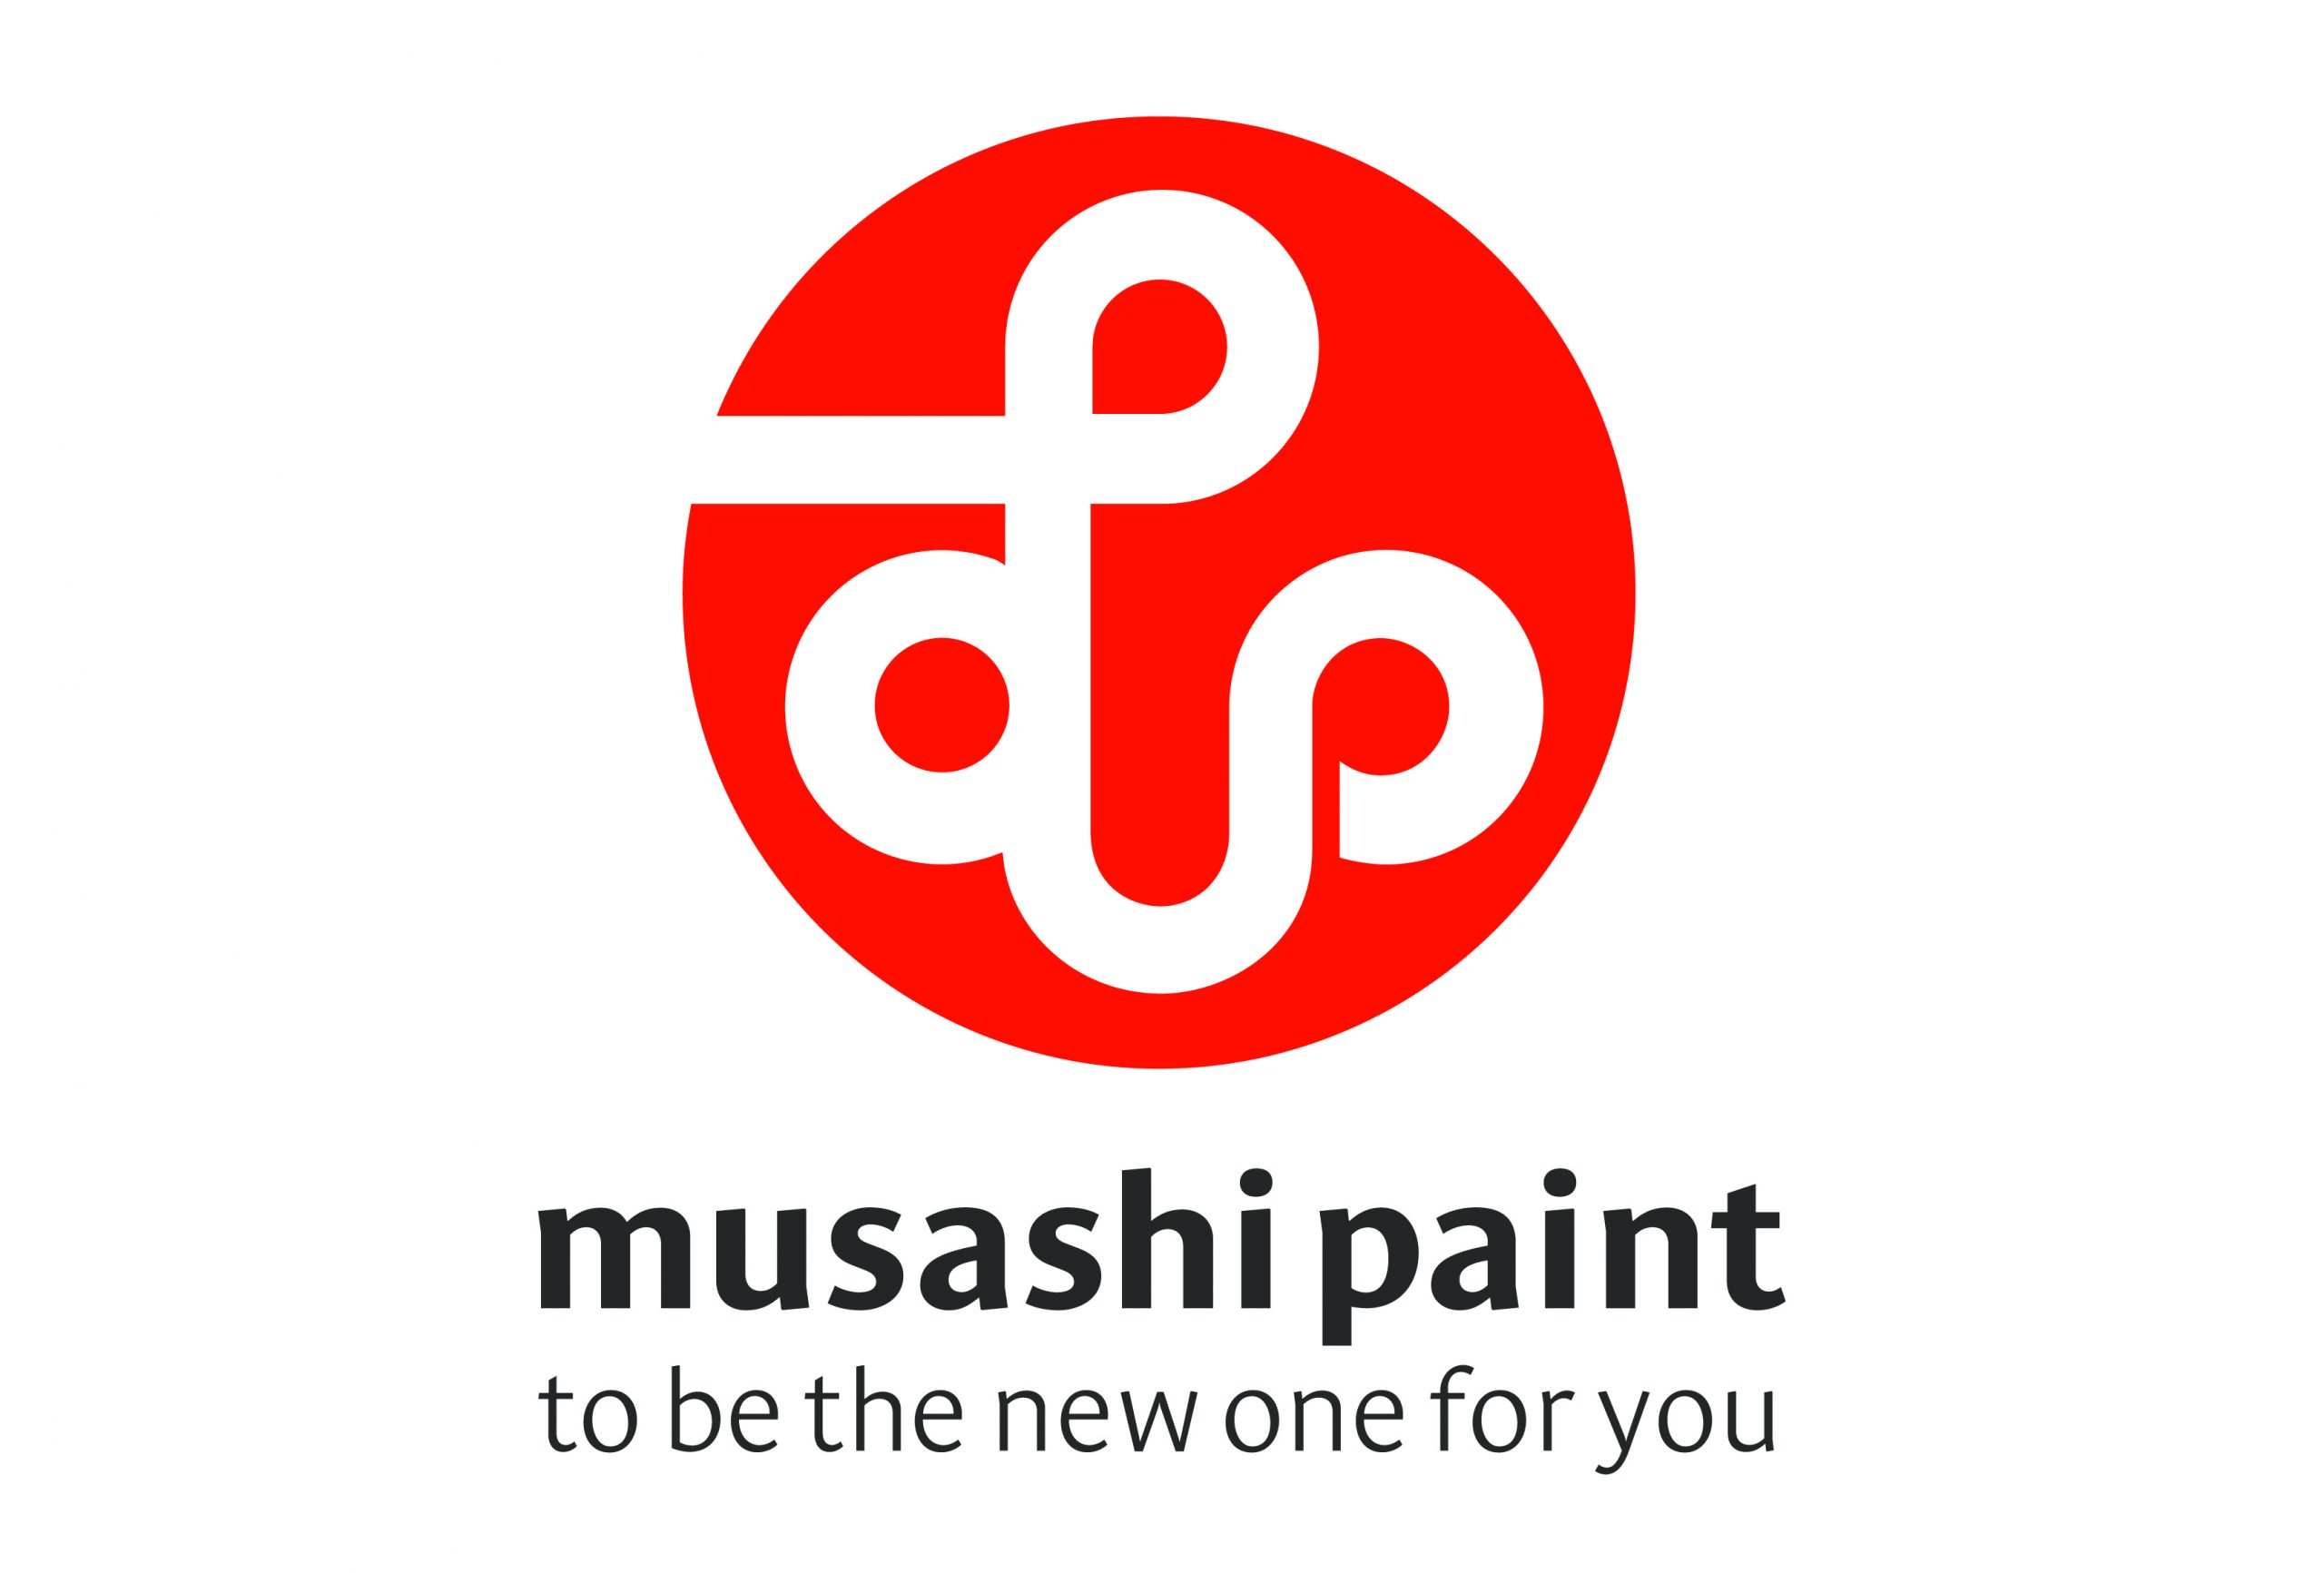 Musashi Paint Group to Launch a New Factory in Chonging (China) and Hanoi (Vietnam)